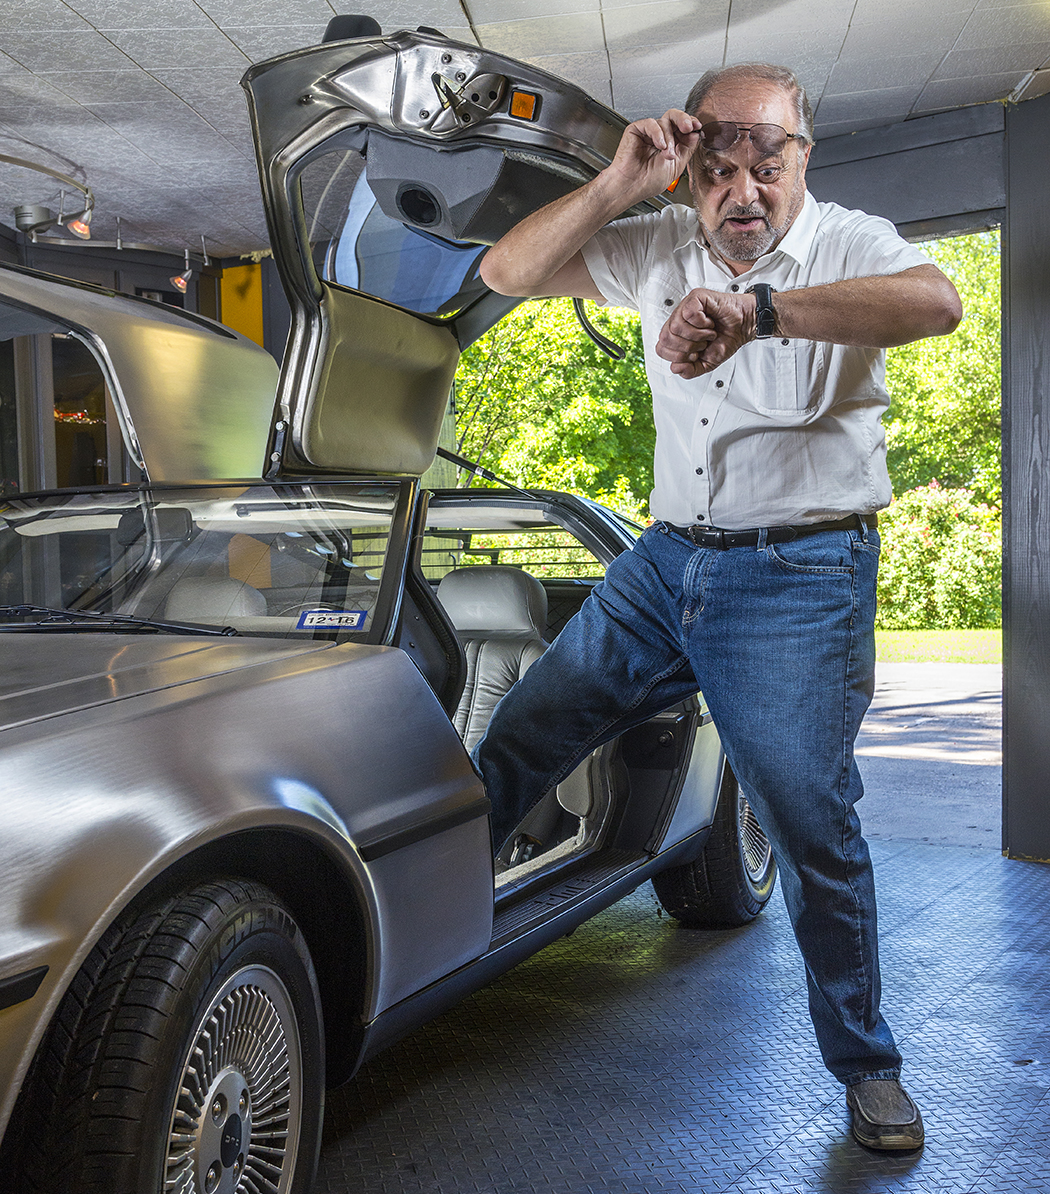 In his best Doc Brown pose, Jaime Sendra steps out of his 1980 DeLorean. (Photo by Danny Fulgencio)